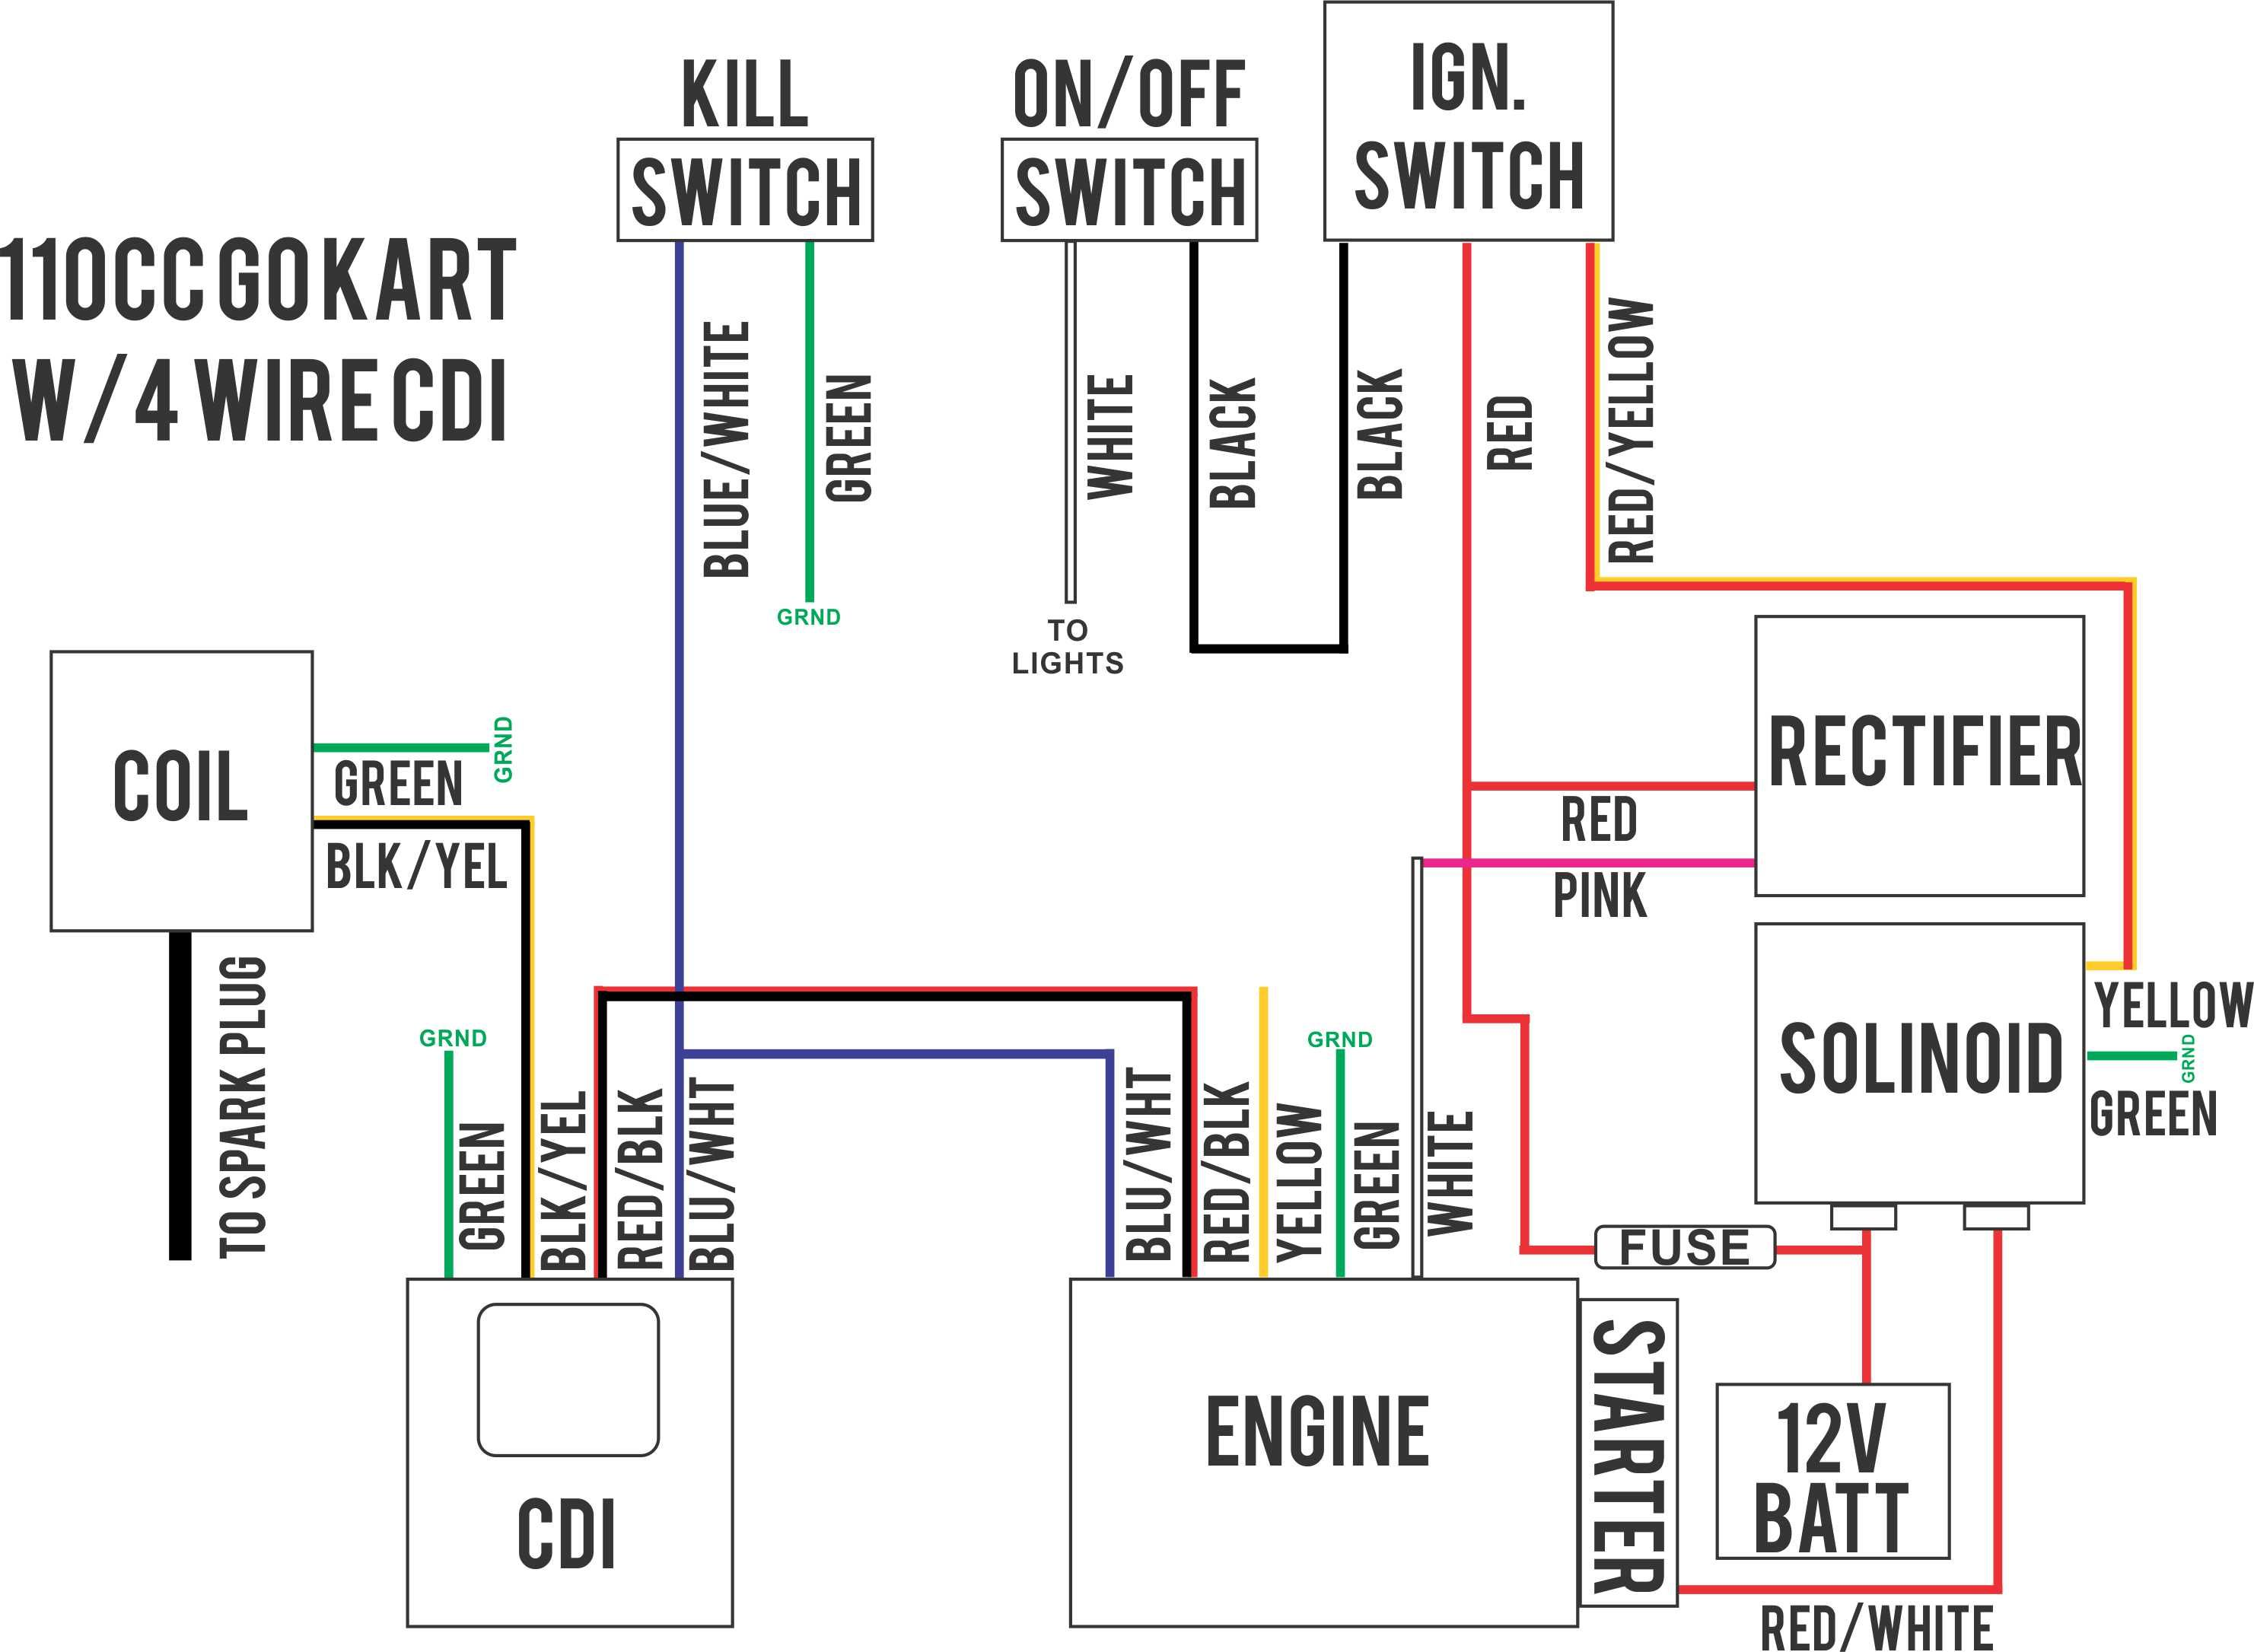 Wiring Diagram 110cc Atv How To Wire Chinese ATV Picturesque 110 For |  Diagrama de instalacion electrica, Montajes electricos, Diagrama de  circuito eléctricoPinterest